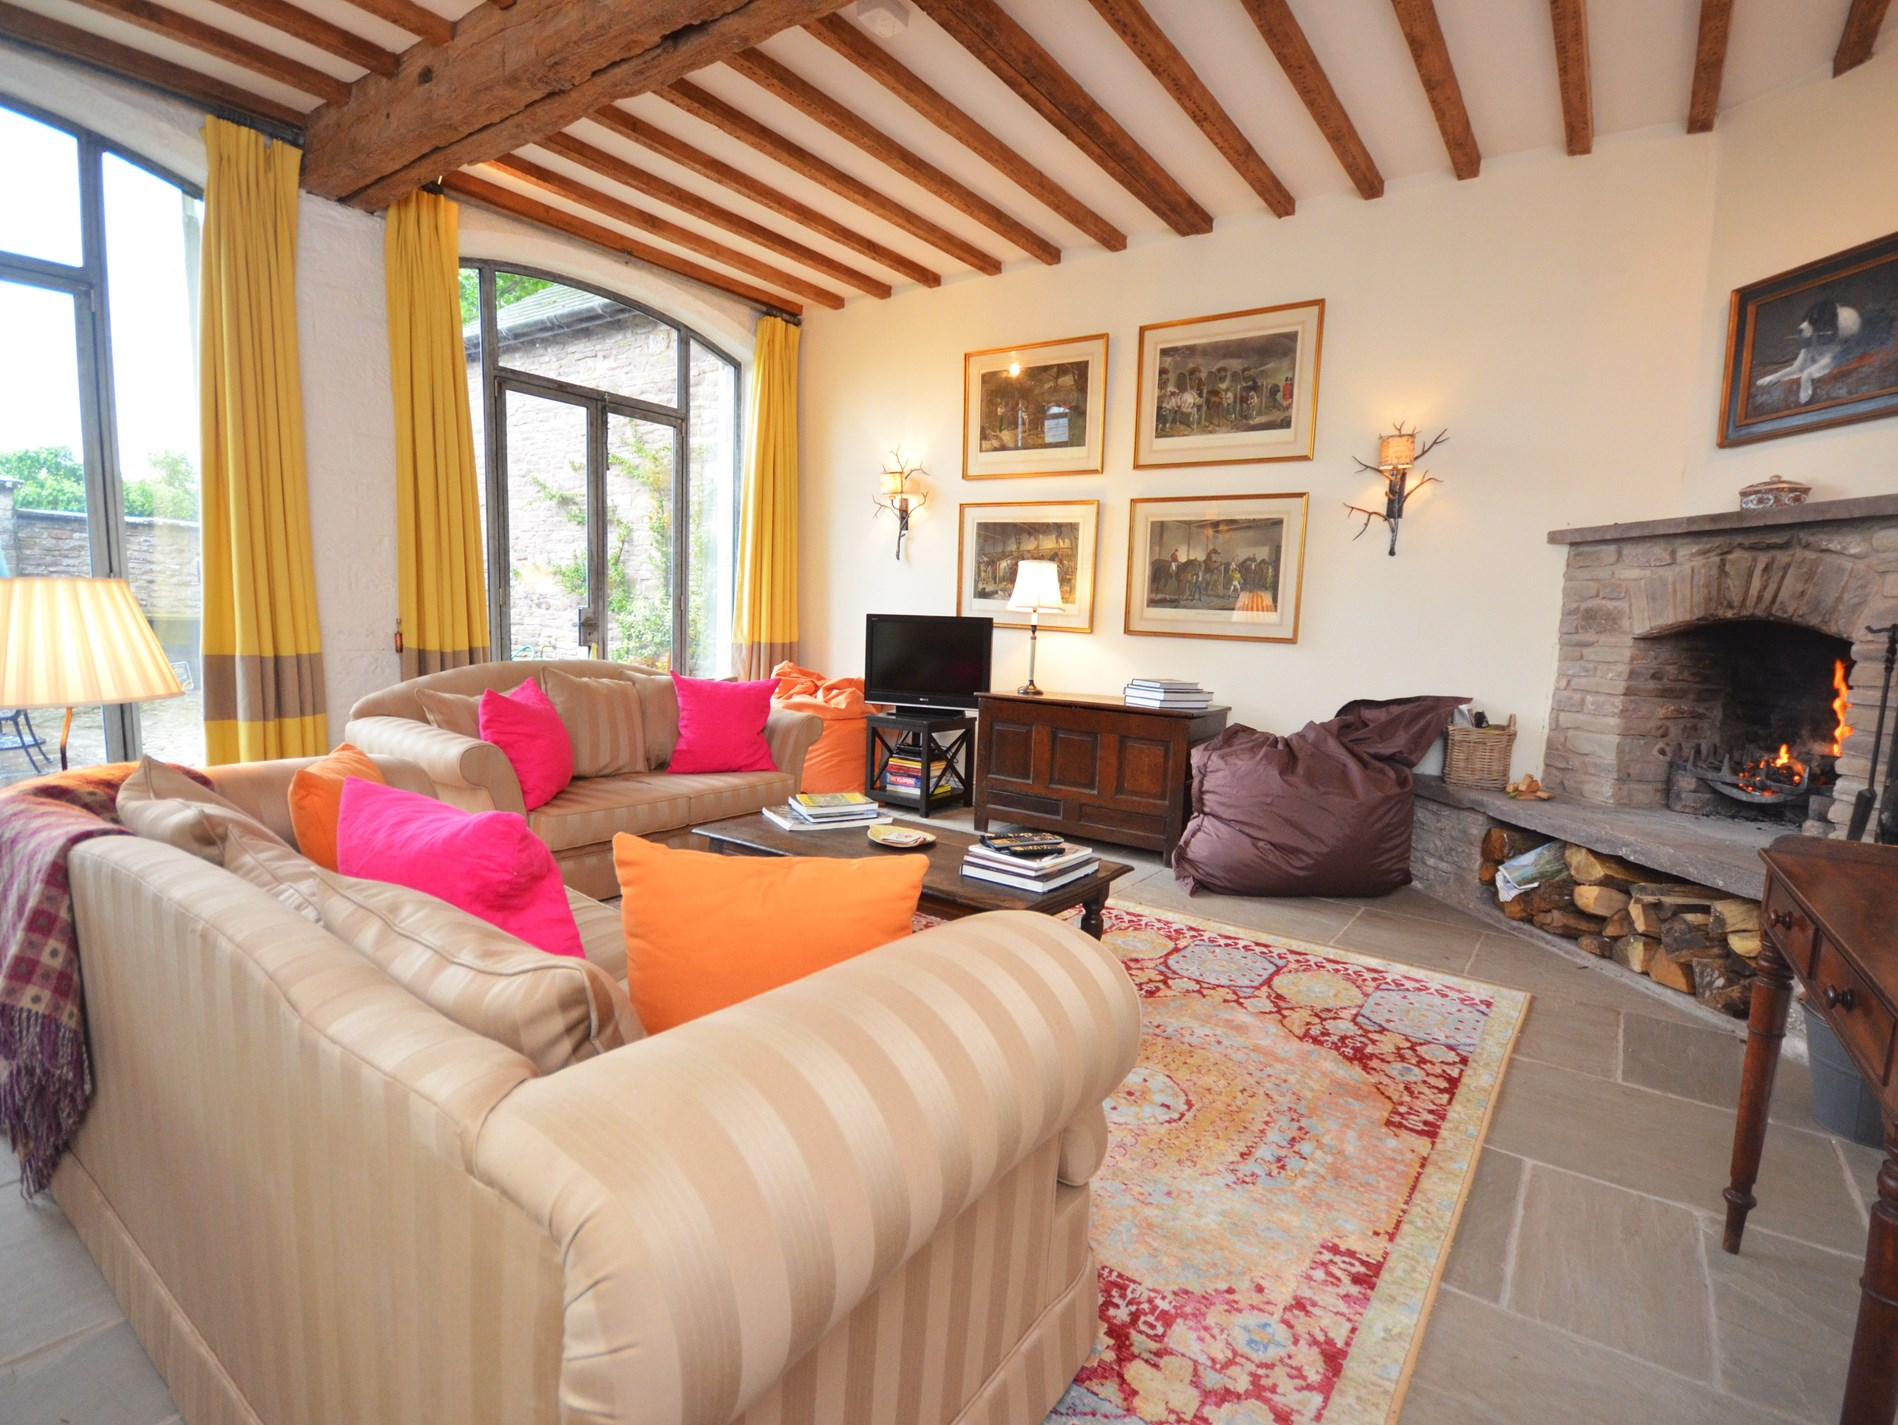 3 Bedroom Barn in Mid Wales, Pembrokeshire and the South